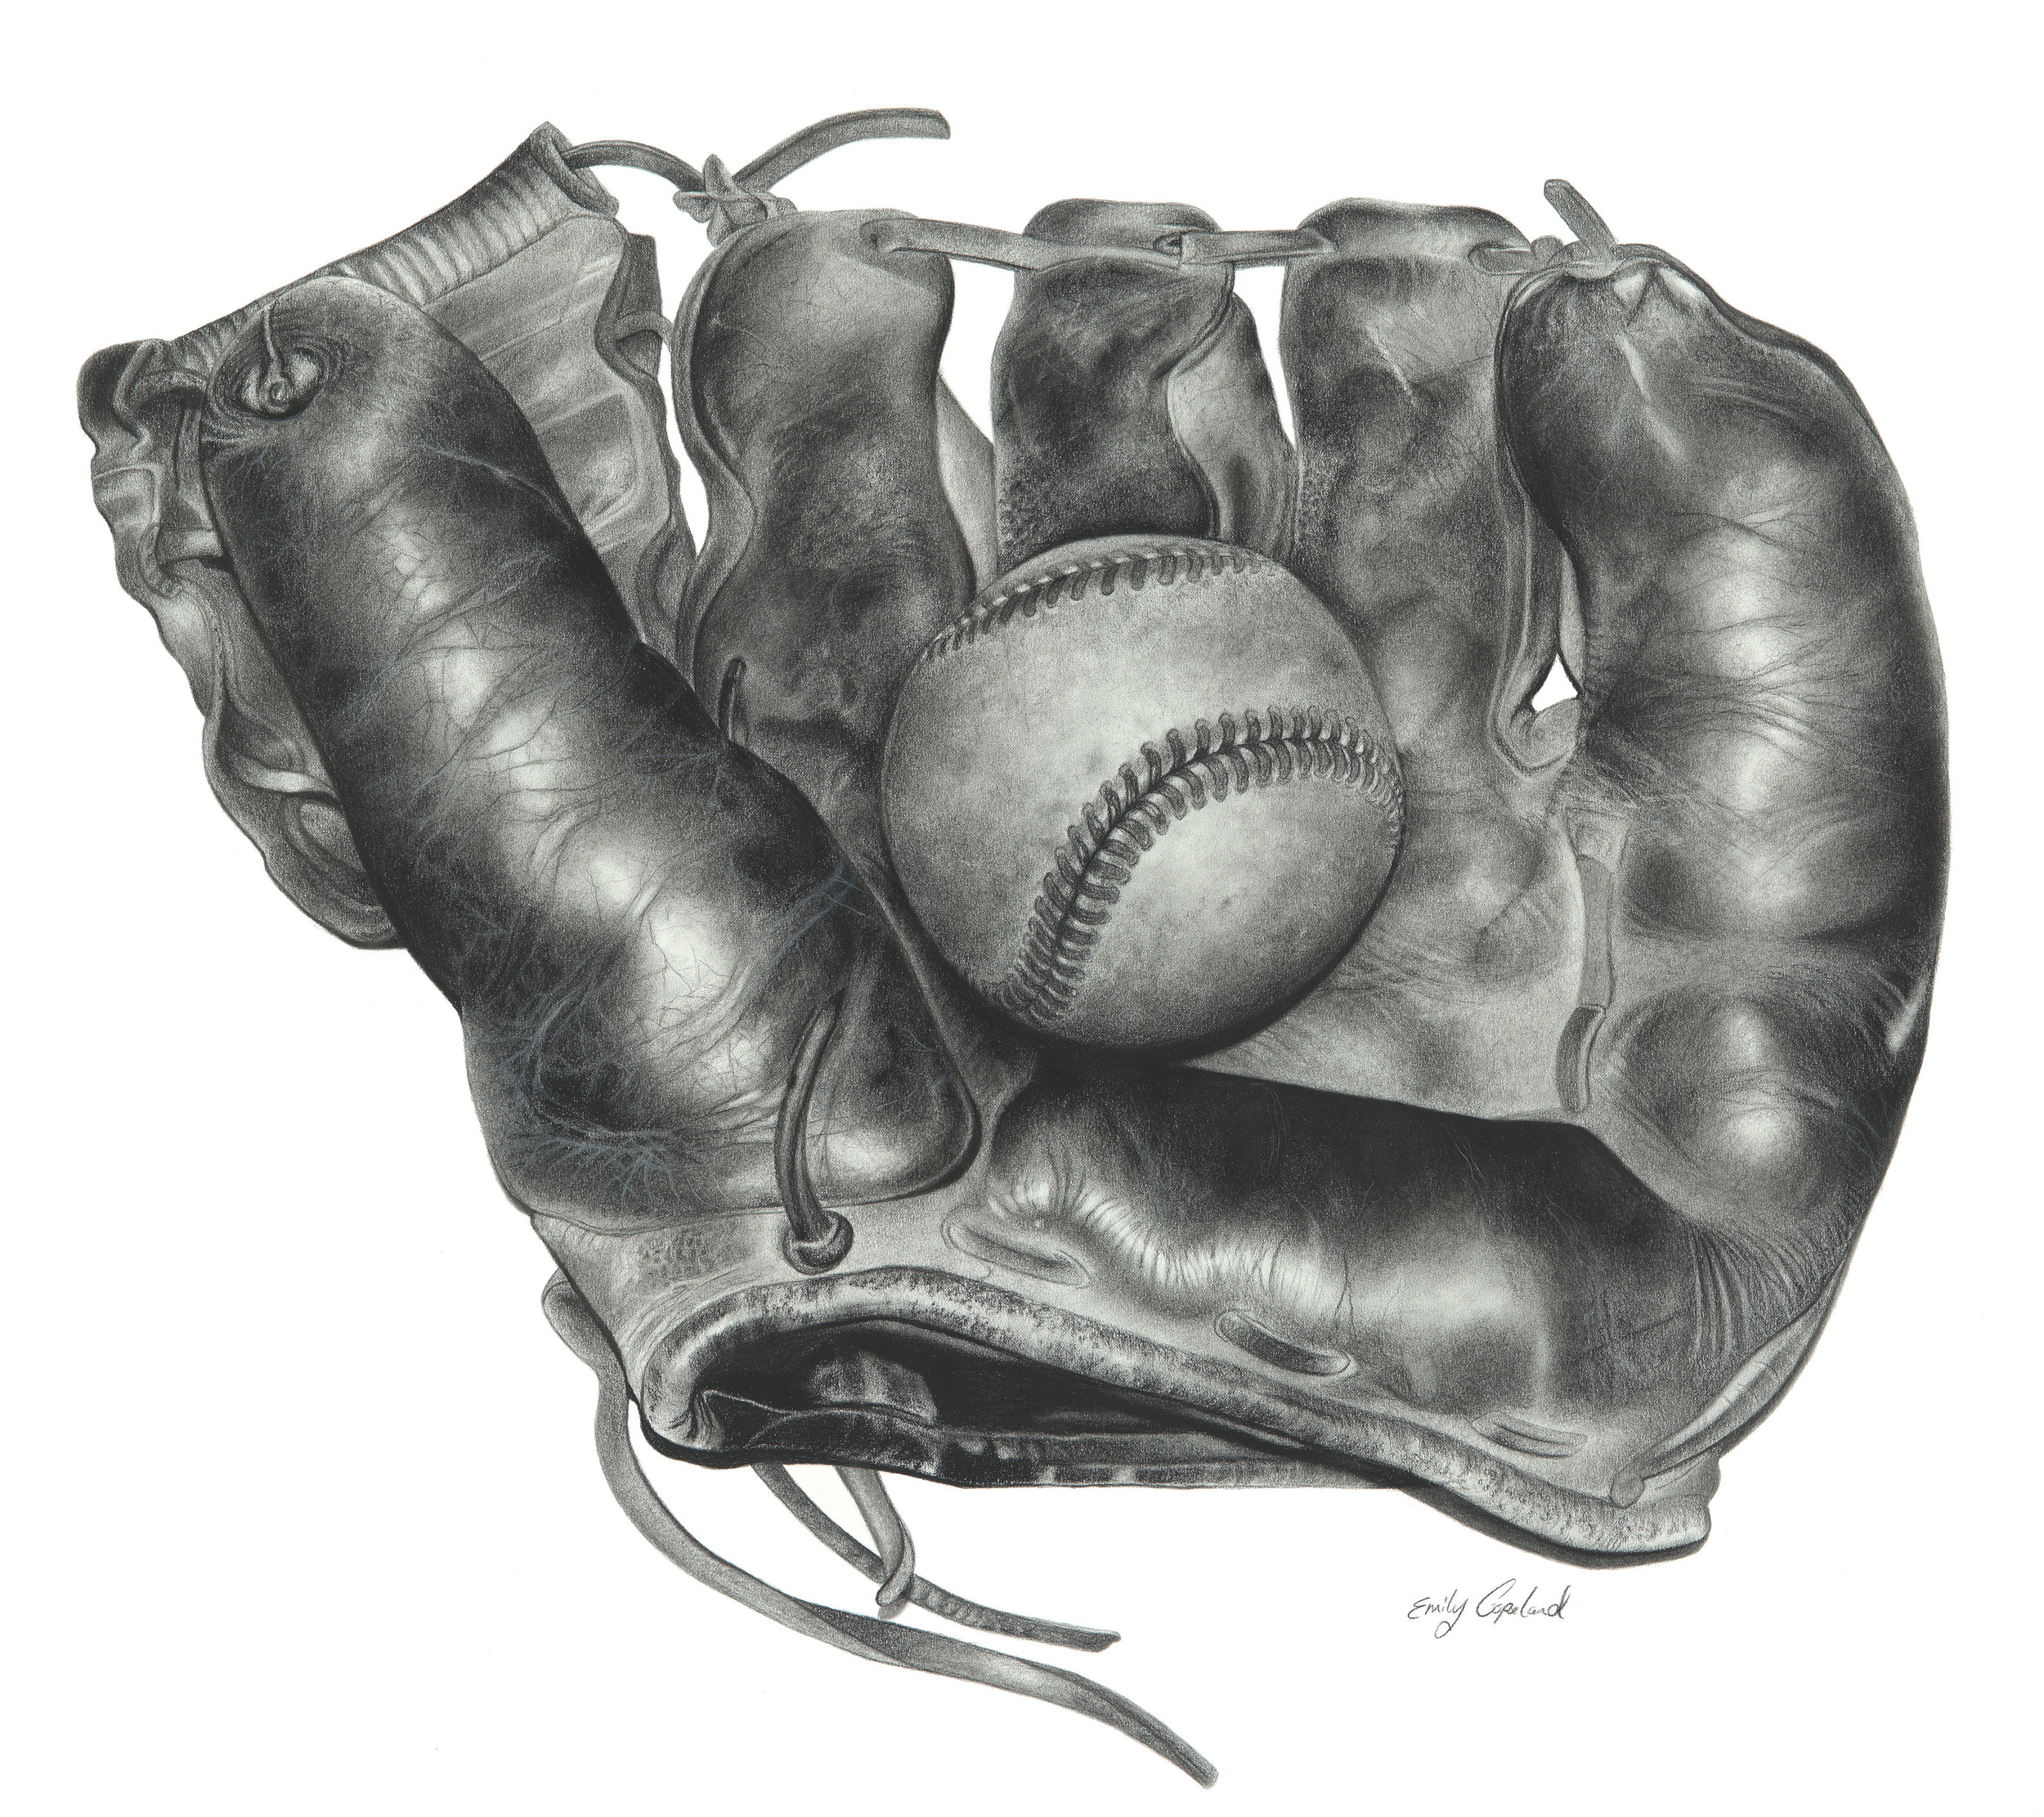 Charcoal Drawing of a Vintage Baseball Glove